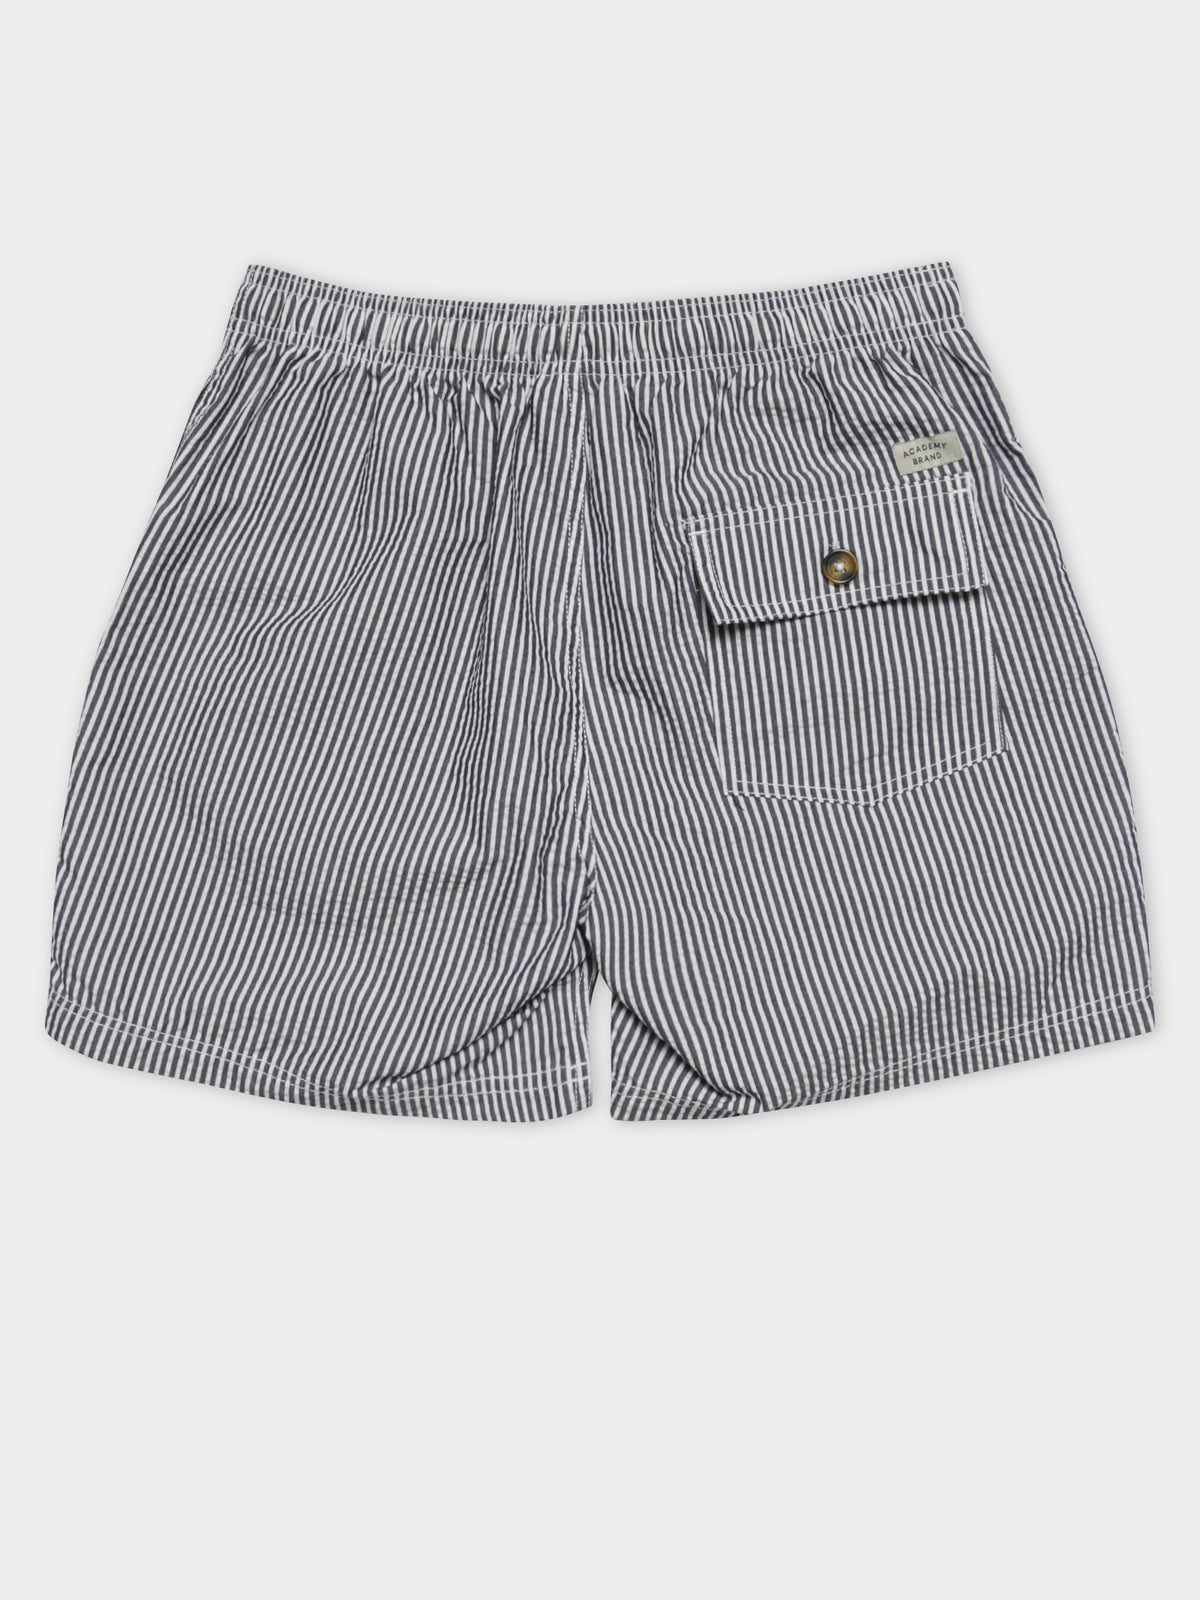 Simon Board Short in Navy & White